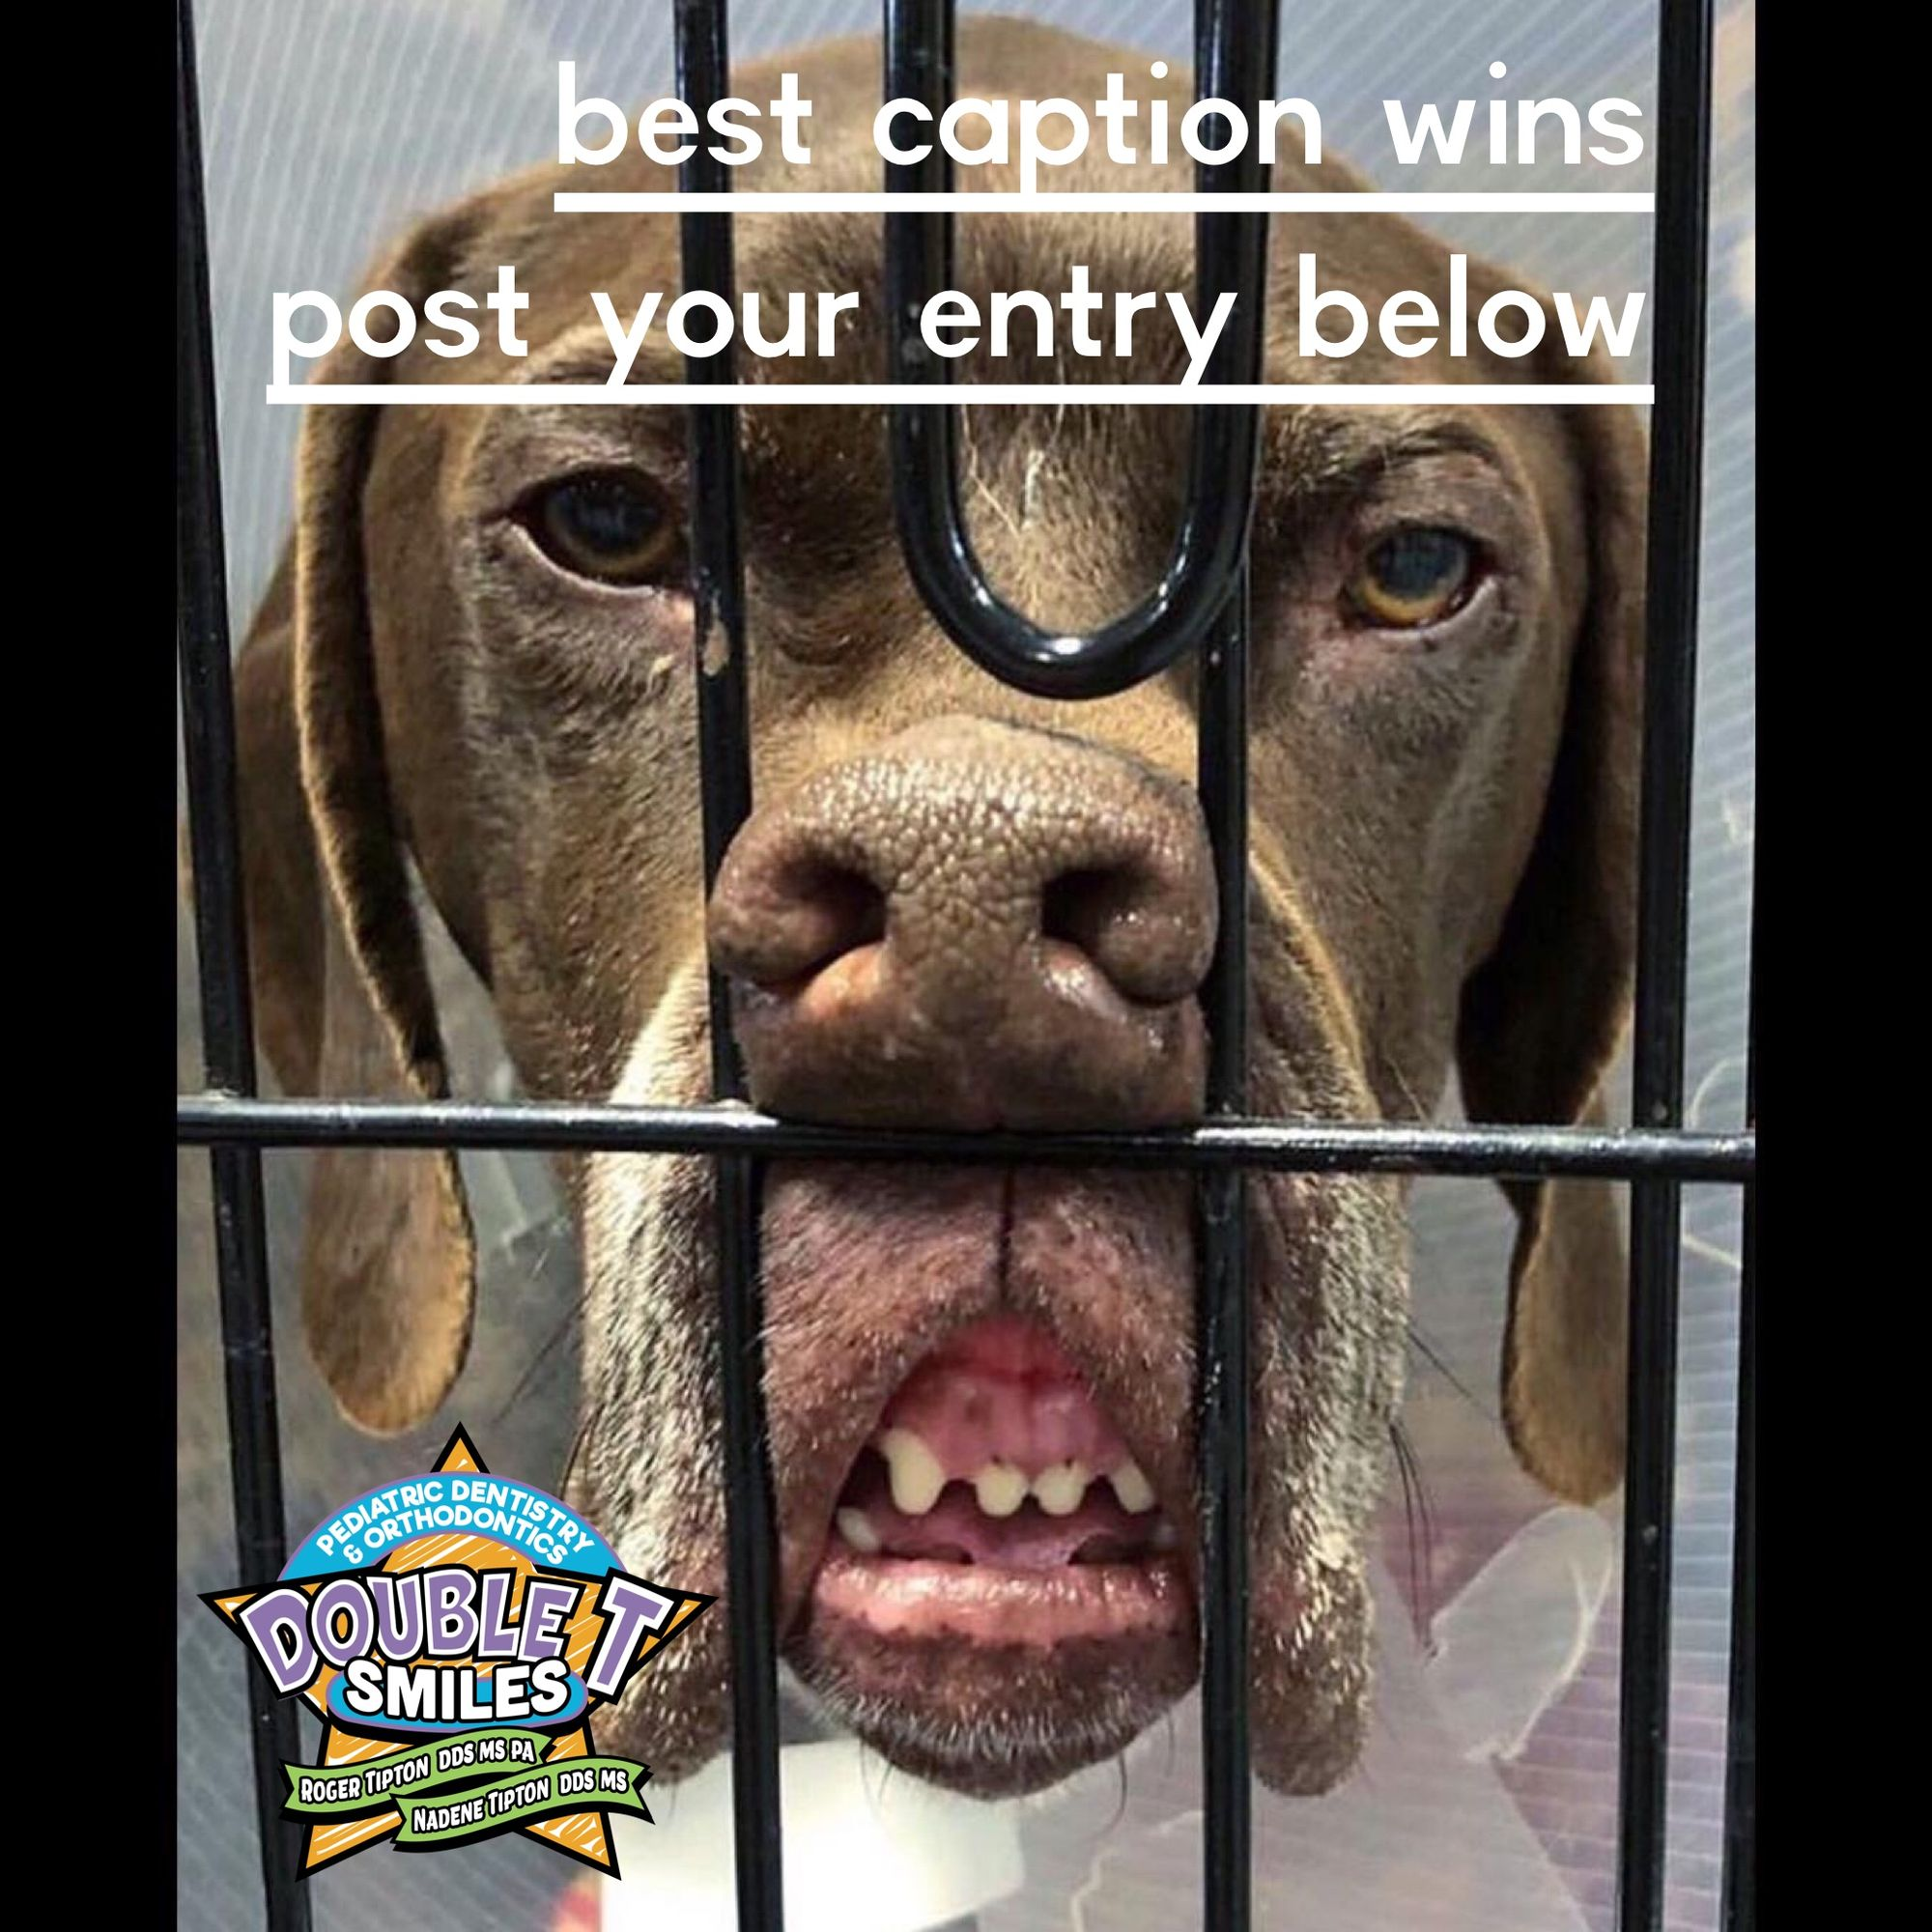 Captioncontest Entriesbelow Doubletsmiles Funfriday Gummysmile Loveourpatients Cool Captions Pediatric Dental Clear Braces